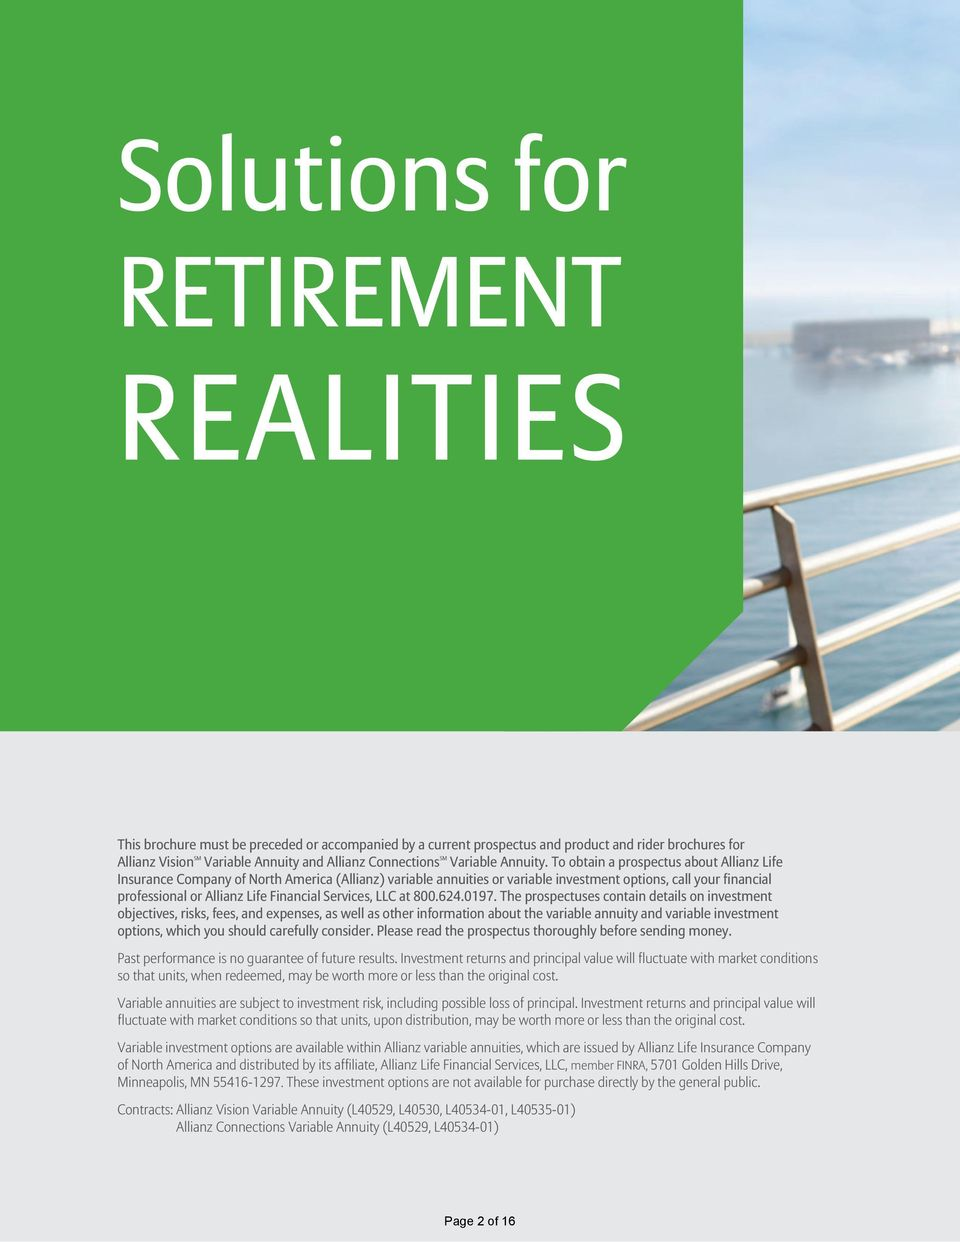 To obtain a prospectus about Allianz Life Insurance Company of North America (Allianz) variable annuities or variable investment options, call your financial professional or Allianz Life Financial